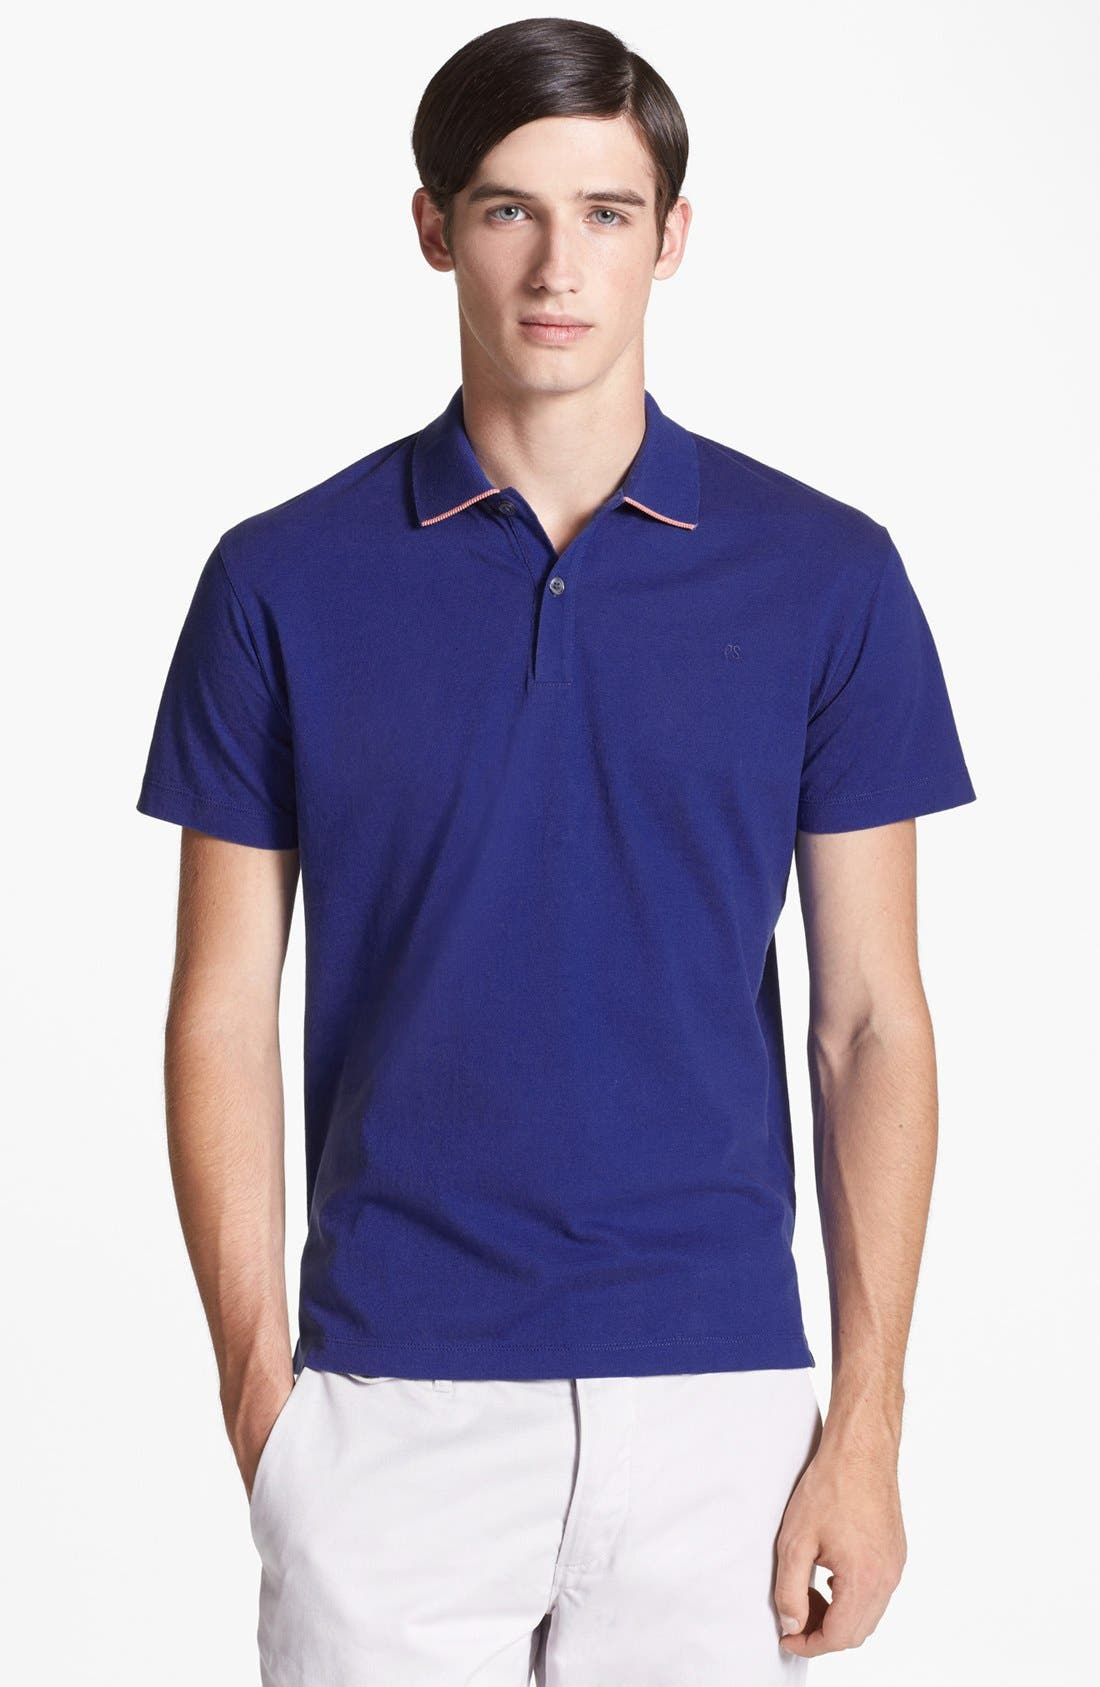 Alternate Image 1 Selected - PS Paul Smith Contrast Tipped Piqué Polo